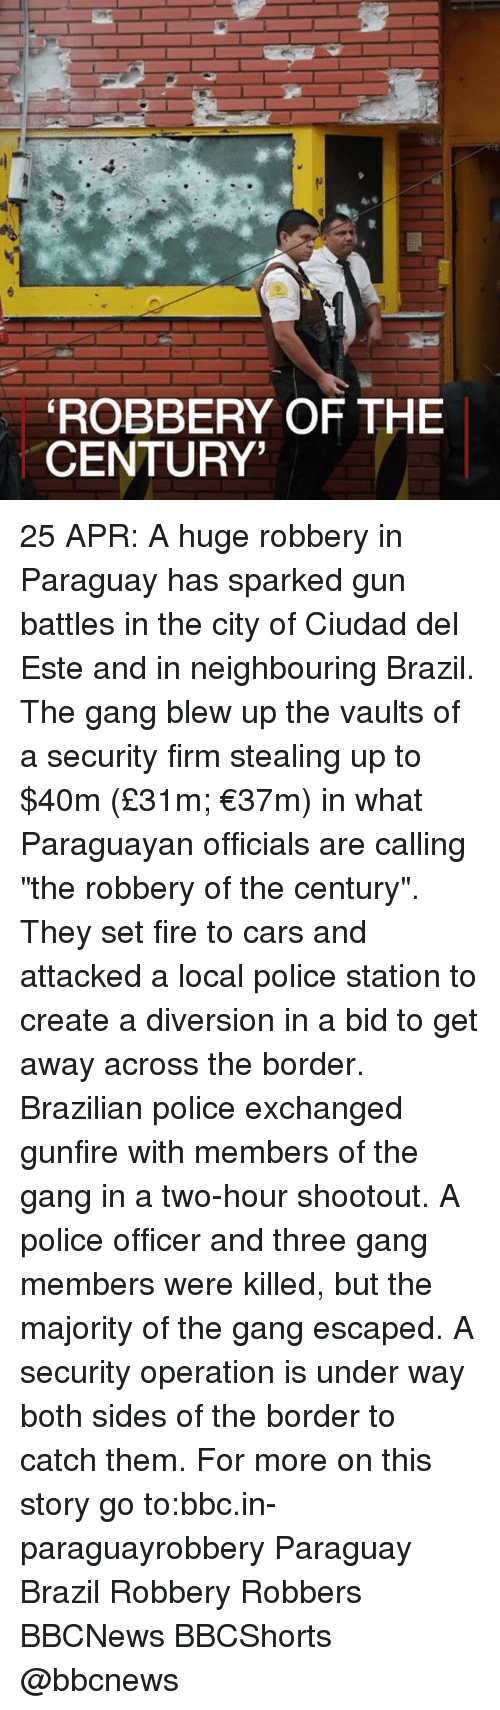 "Diversion: ROBBERY OF THE  CENTURY' 25 APR: A huge robbery in Paraguay has sparked gun battles in the city of Ciudad del Este and in neighbouring Brazil. The gang blew up the vaults of a security firm stealing up to $40m (£31m; €37m) in what Paraguayan officials are calling ""the robbery of the century"". They set fire to cars and attacked a local police station to create a diversion in a bid to get away across the border. Brazilian police exchanged gunfire with members of the gang in a two-hour shootout. A police officer and three gang members were killed, but the majority of the gang escaped. A security operation is under way both sides of the border to catch them. For more on this story go to:bbc.in-paraguayrobbery Paraguay Brazil Robbery Robbers BBCNews BBCShorts @bbcnews"